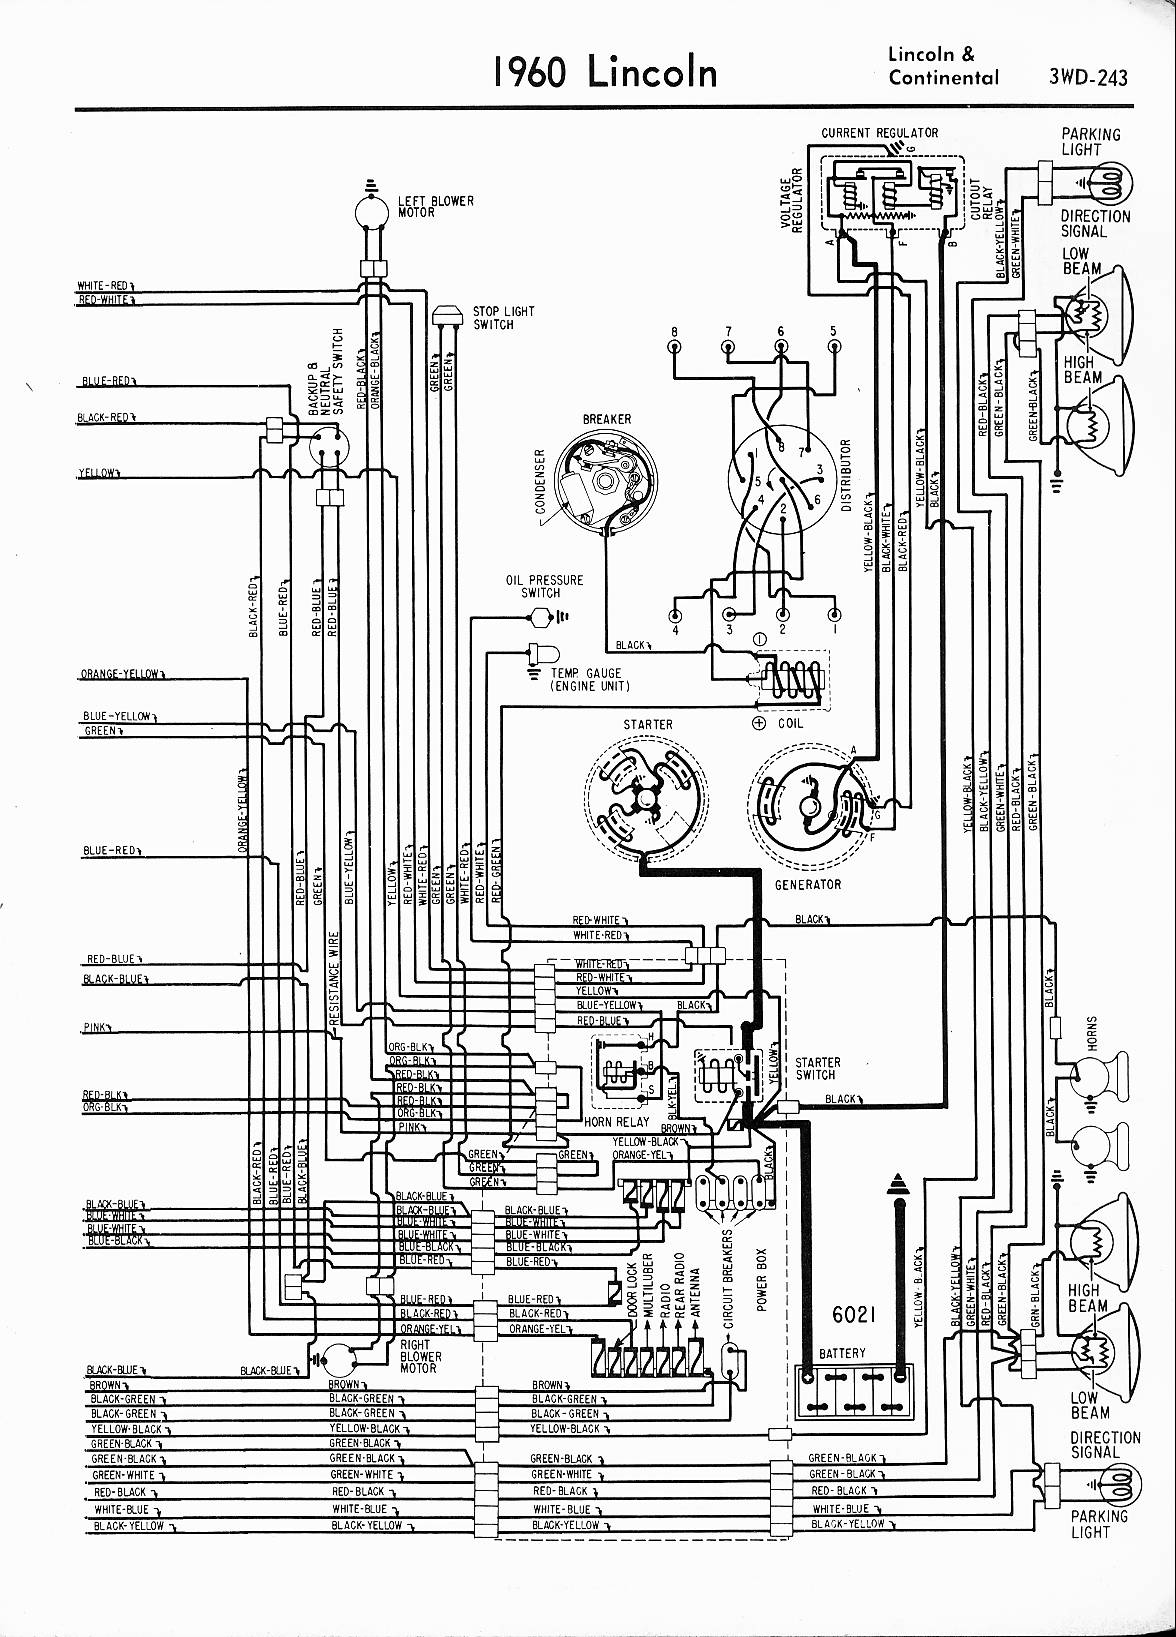 1964 Lincoln Fuse Box Wiring Diagram Drag Car 1970 El Camino 1973 Mark V Diagrams 1991